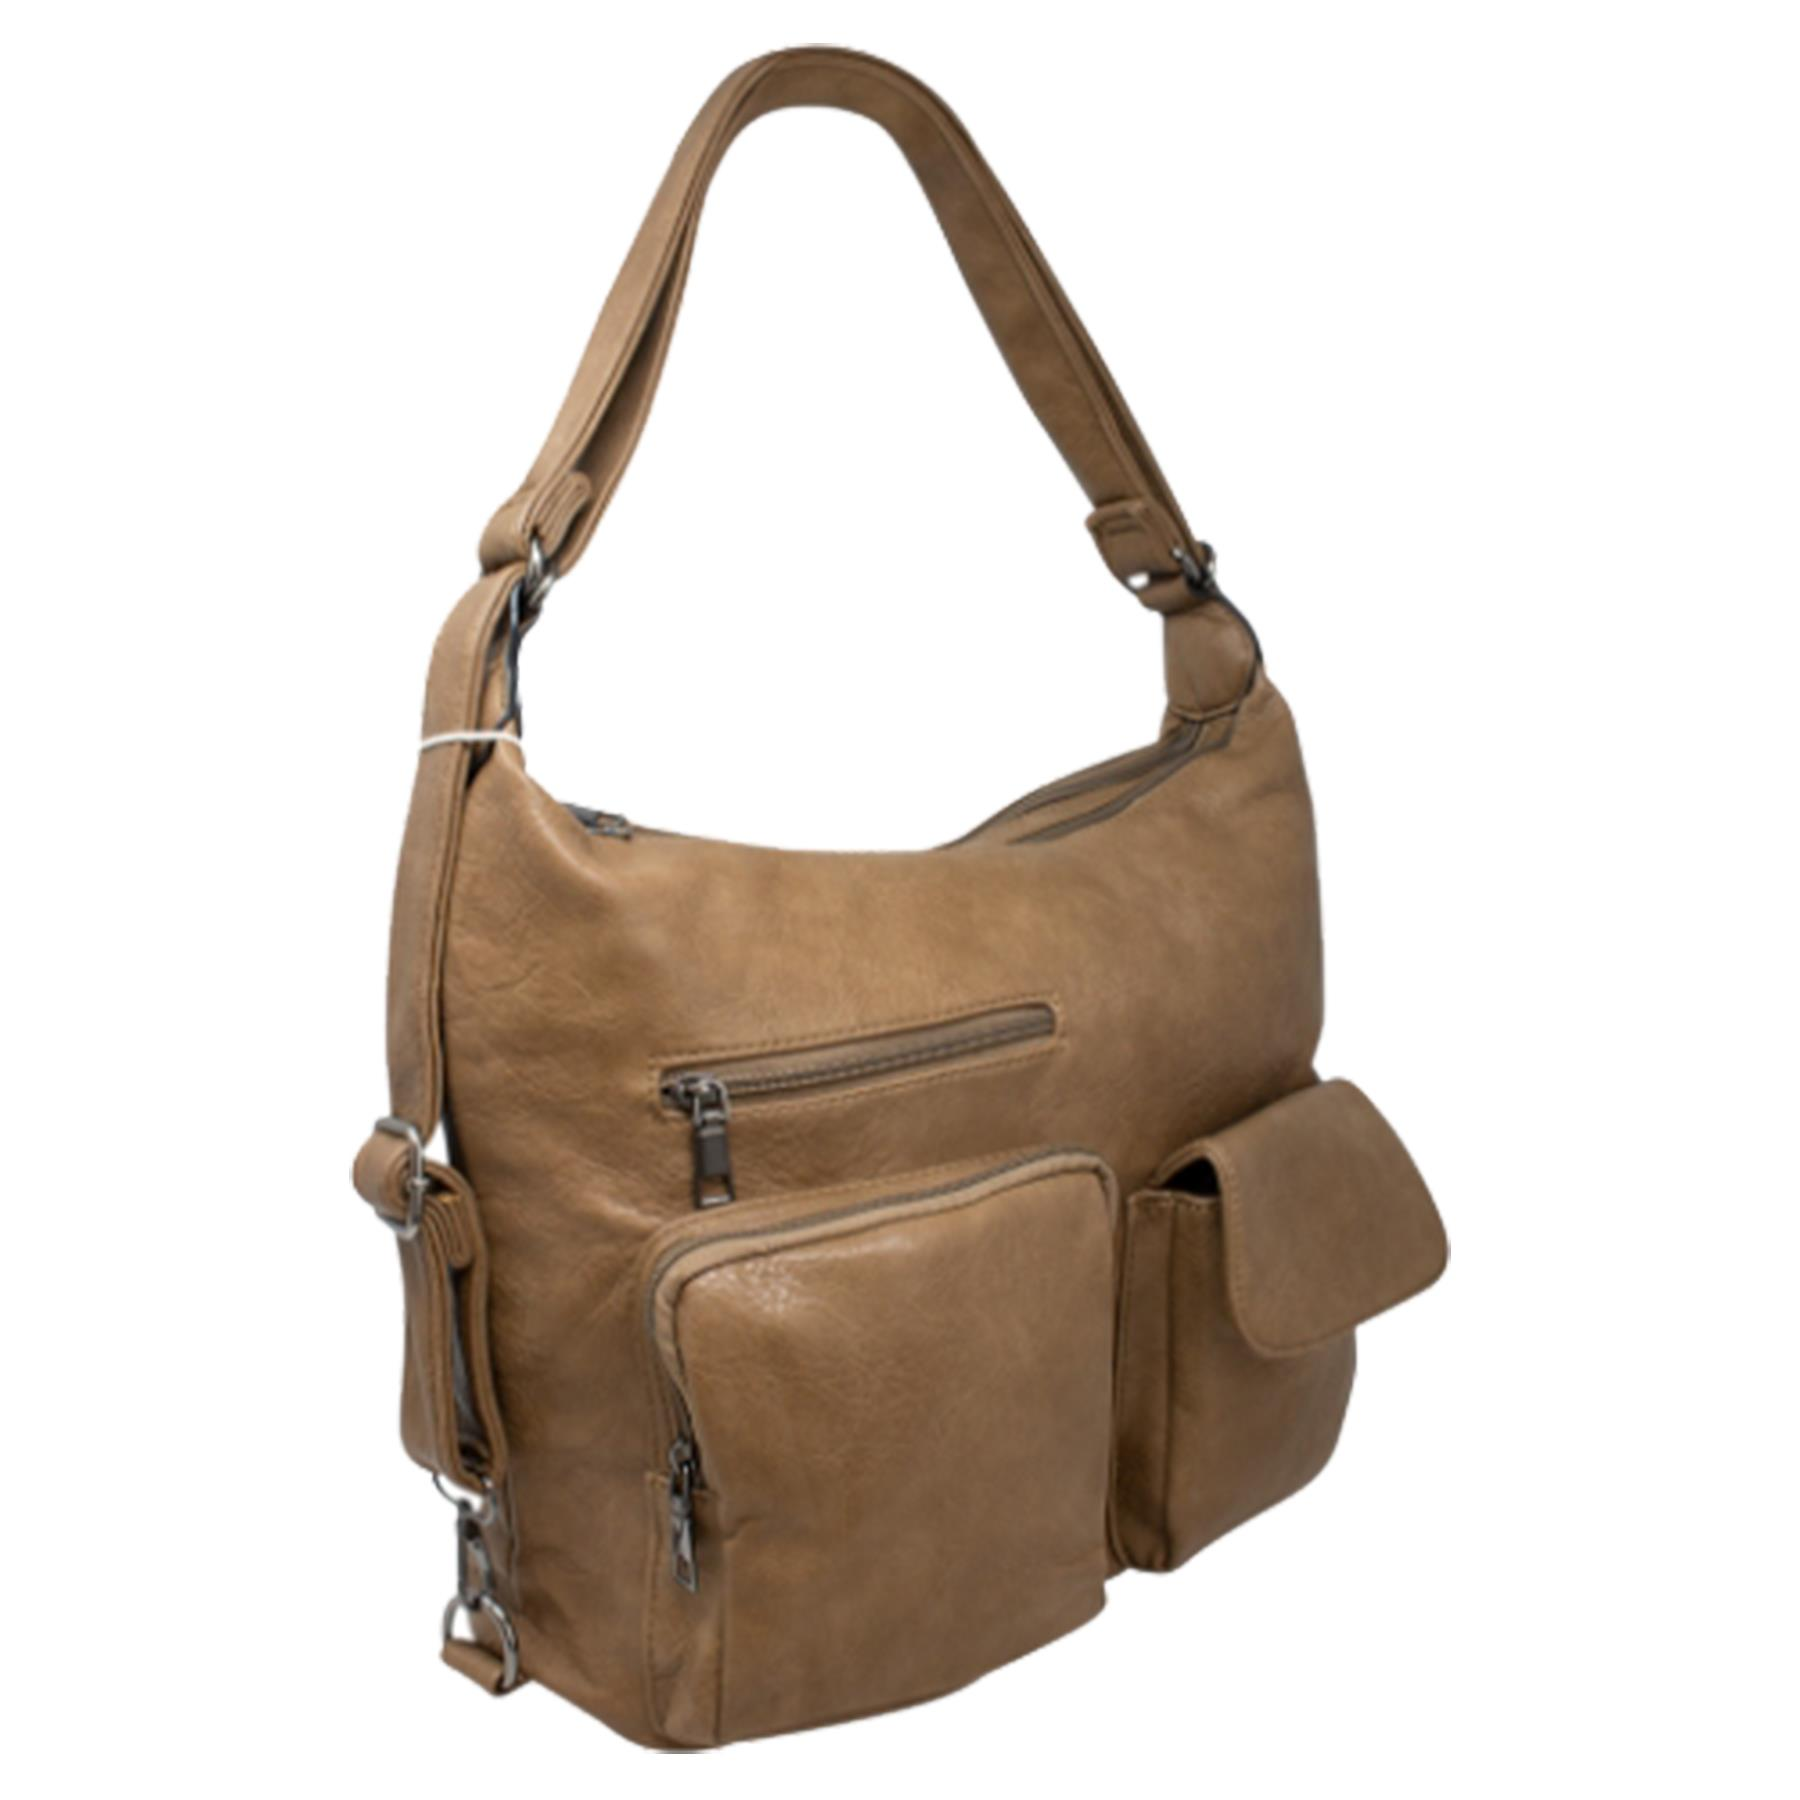 New-Women-s-Men-s-Faux-Leather-Multi-Purpose-Crossbody-Messenger-Bag thumbnail 27